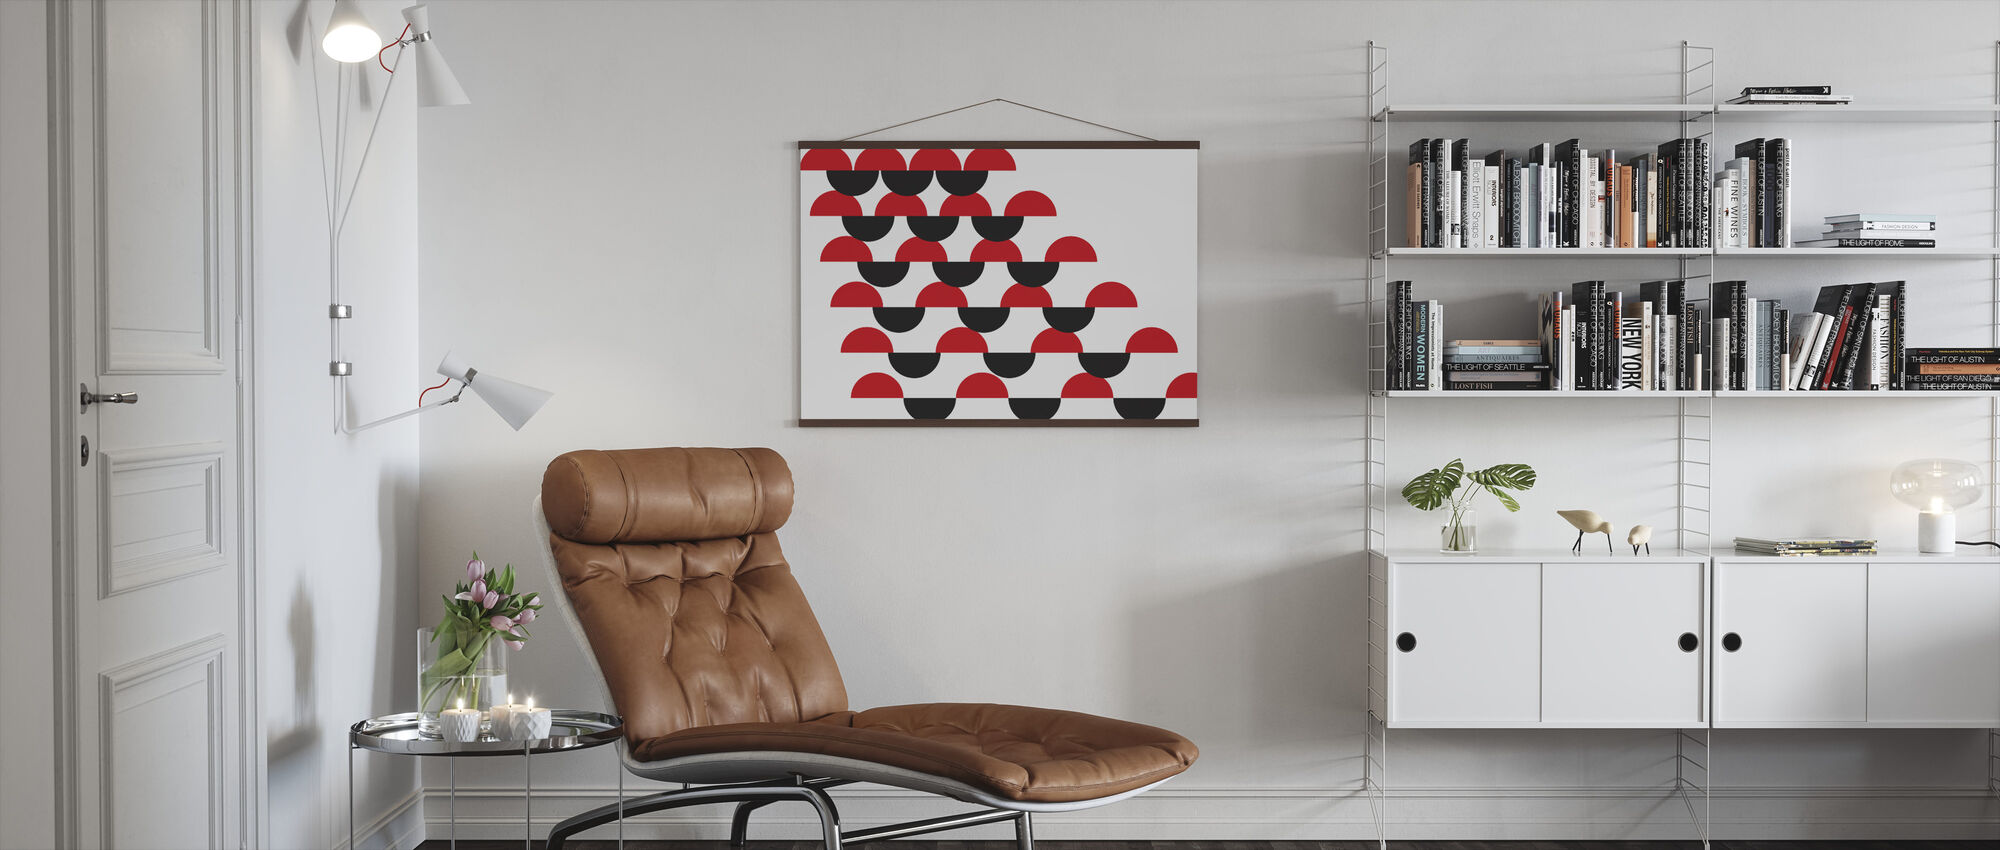 Habana Red and Black - Poster - Living Room